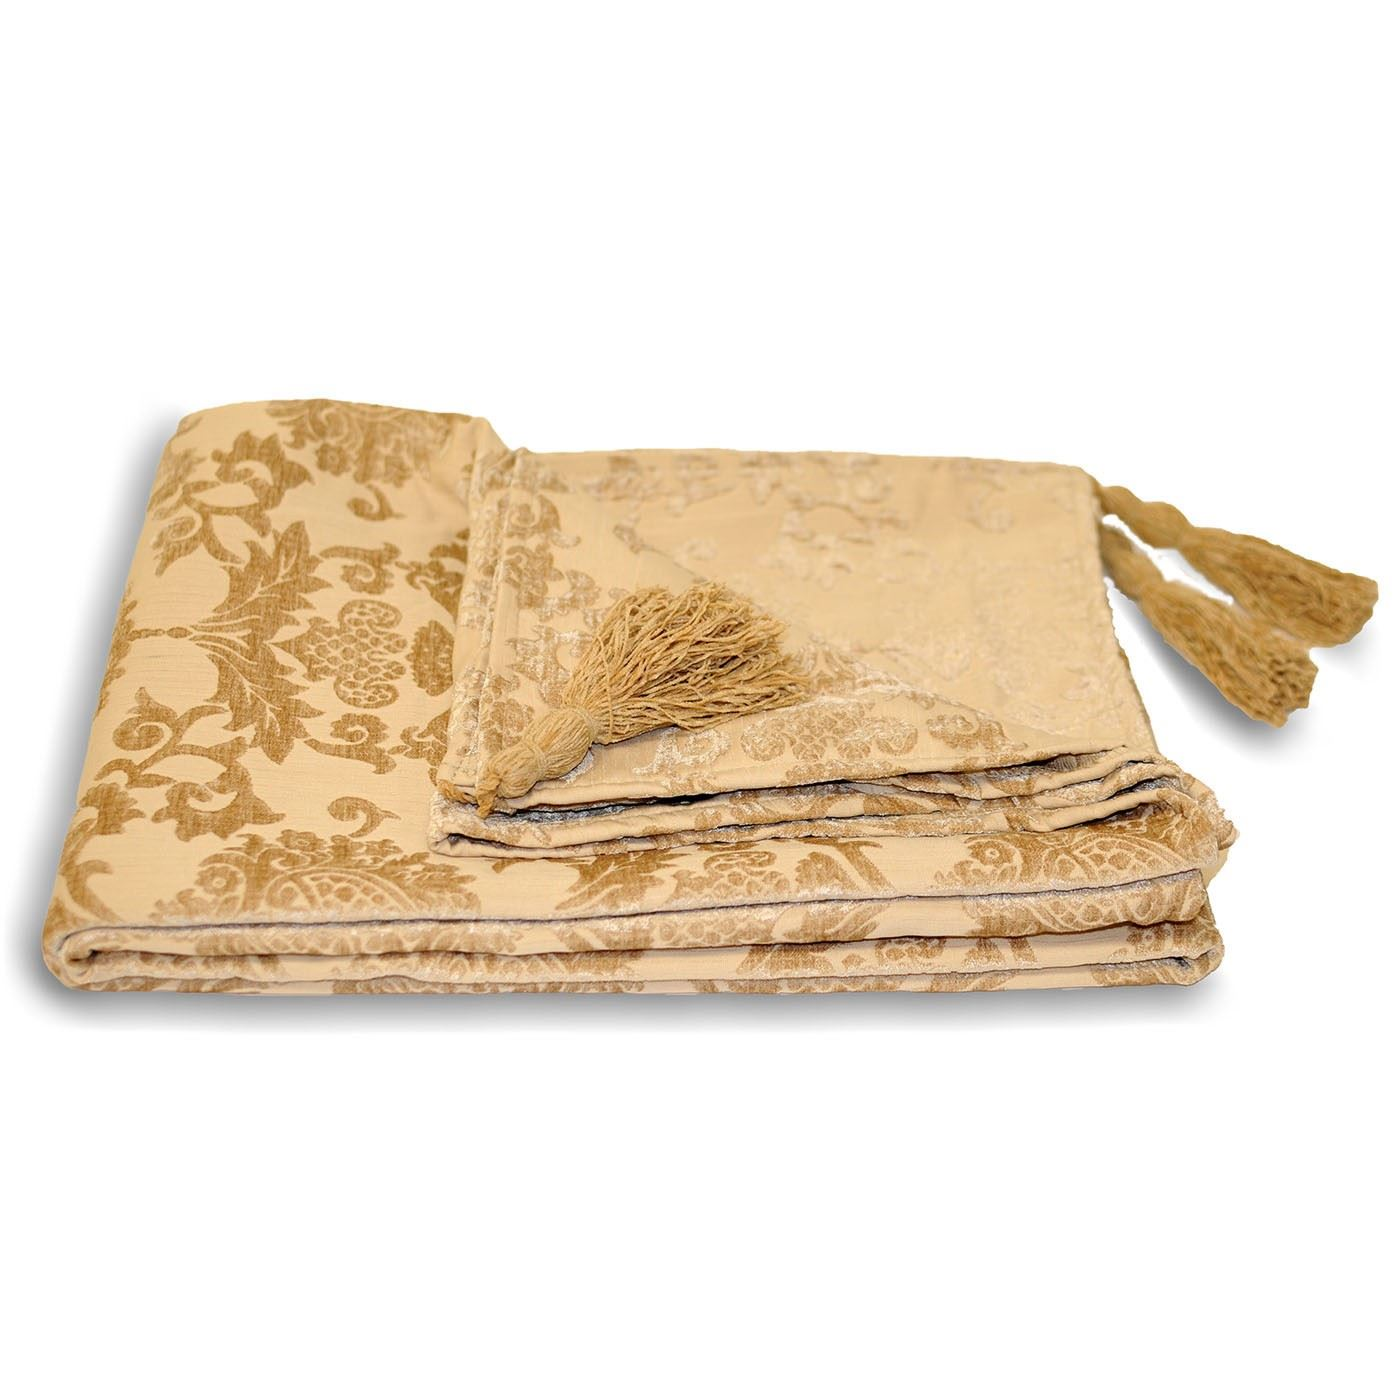 gold throws for sofas 2 seater red leather sofa bed blanket throwovers throw over chenille chair